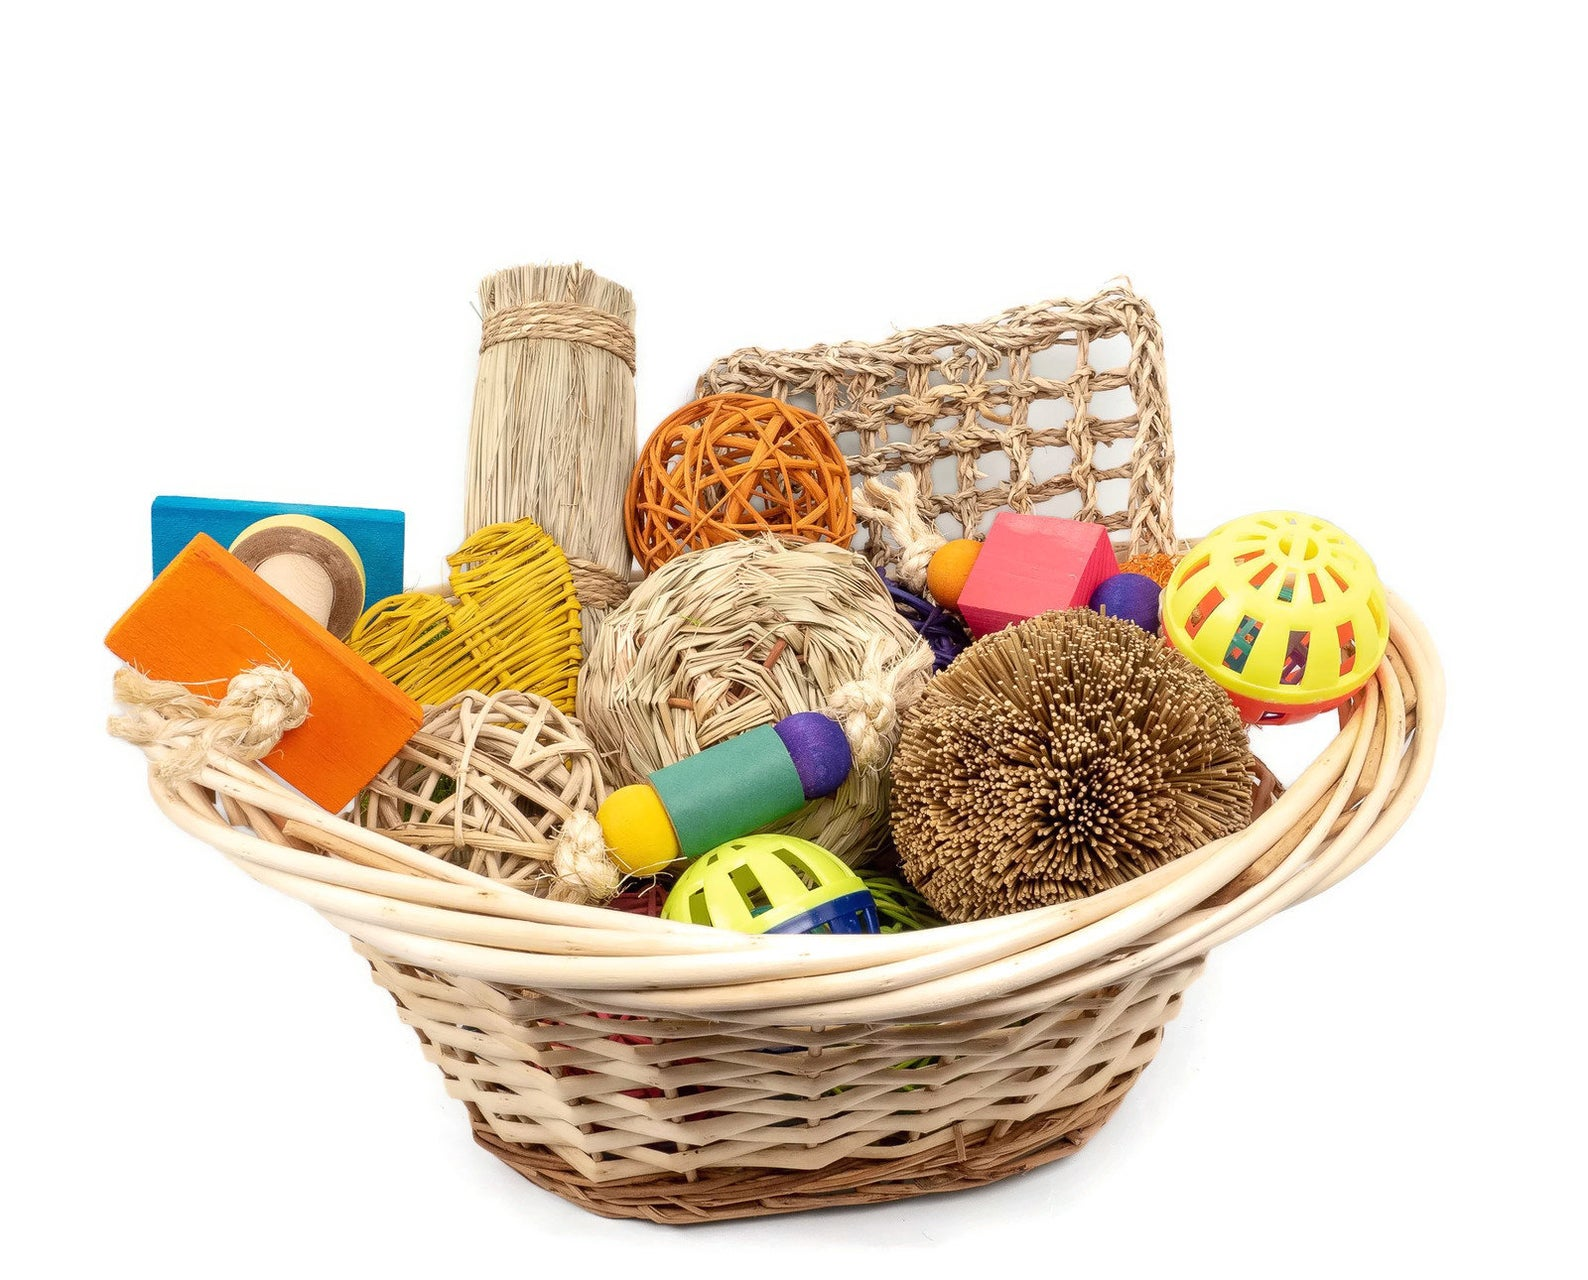 Baskets & Bundles